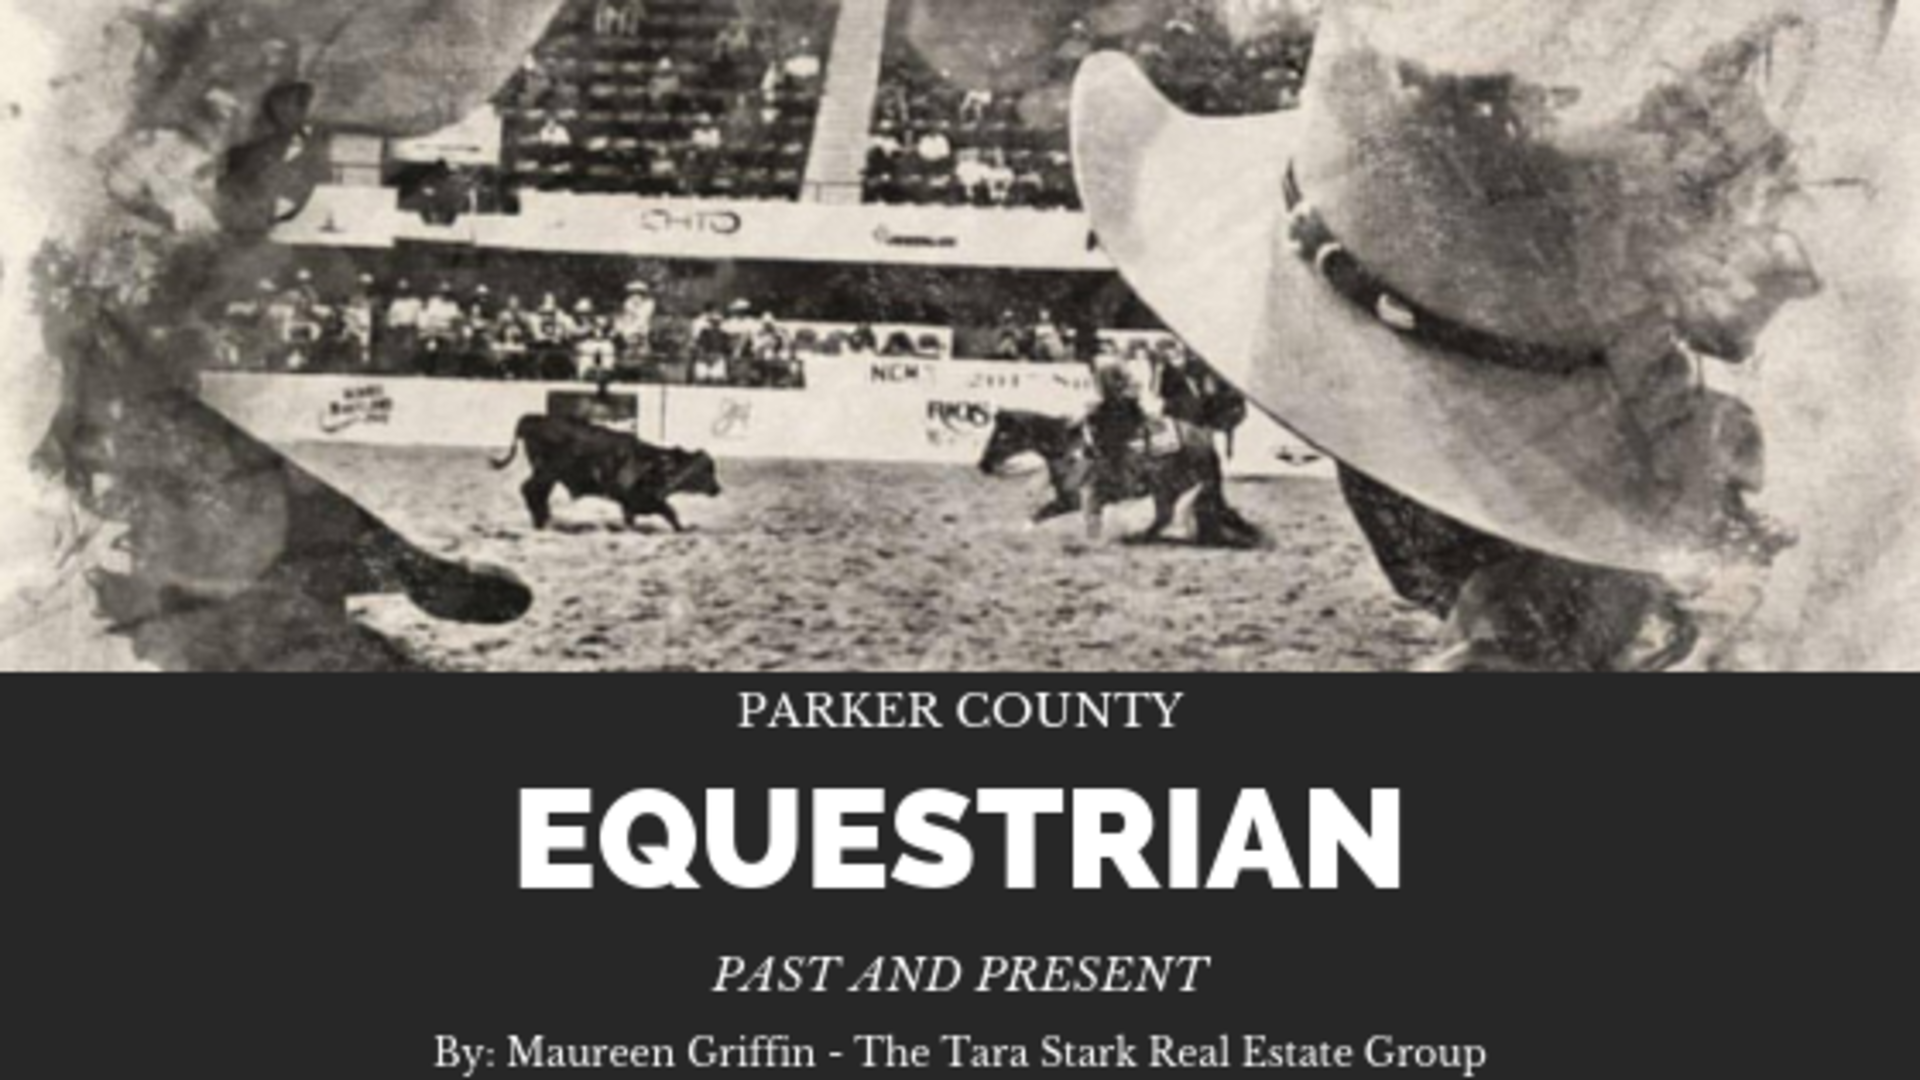 Parker County Equestrian Past and Present